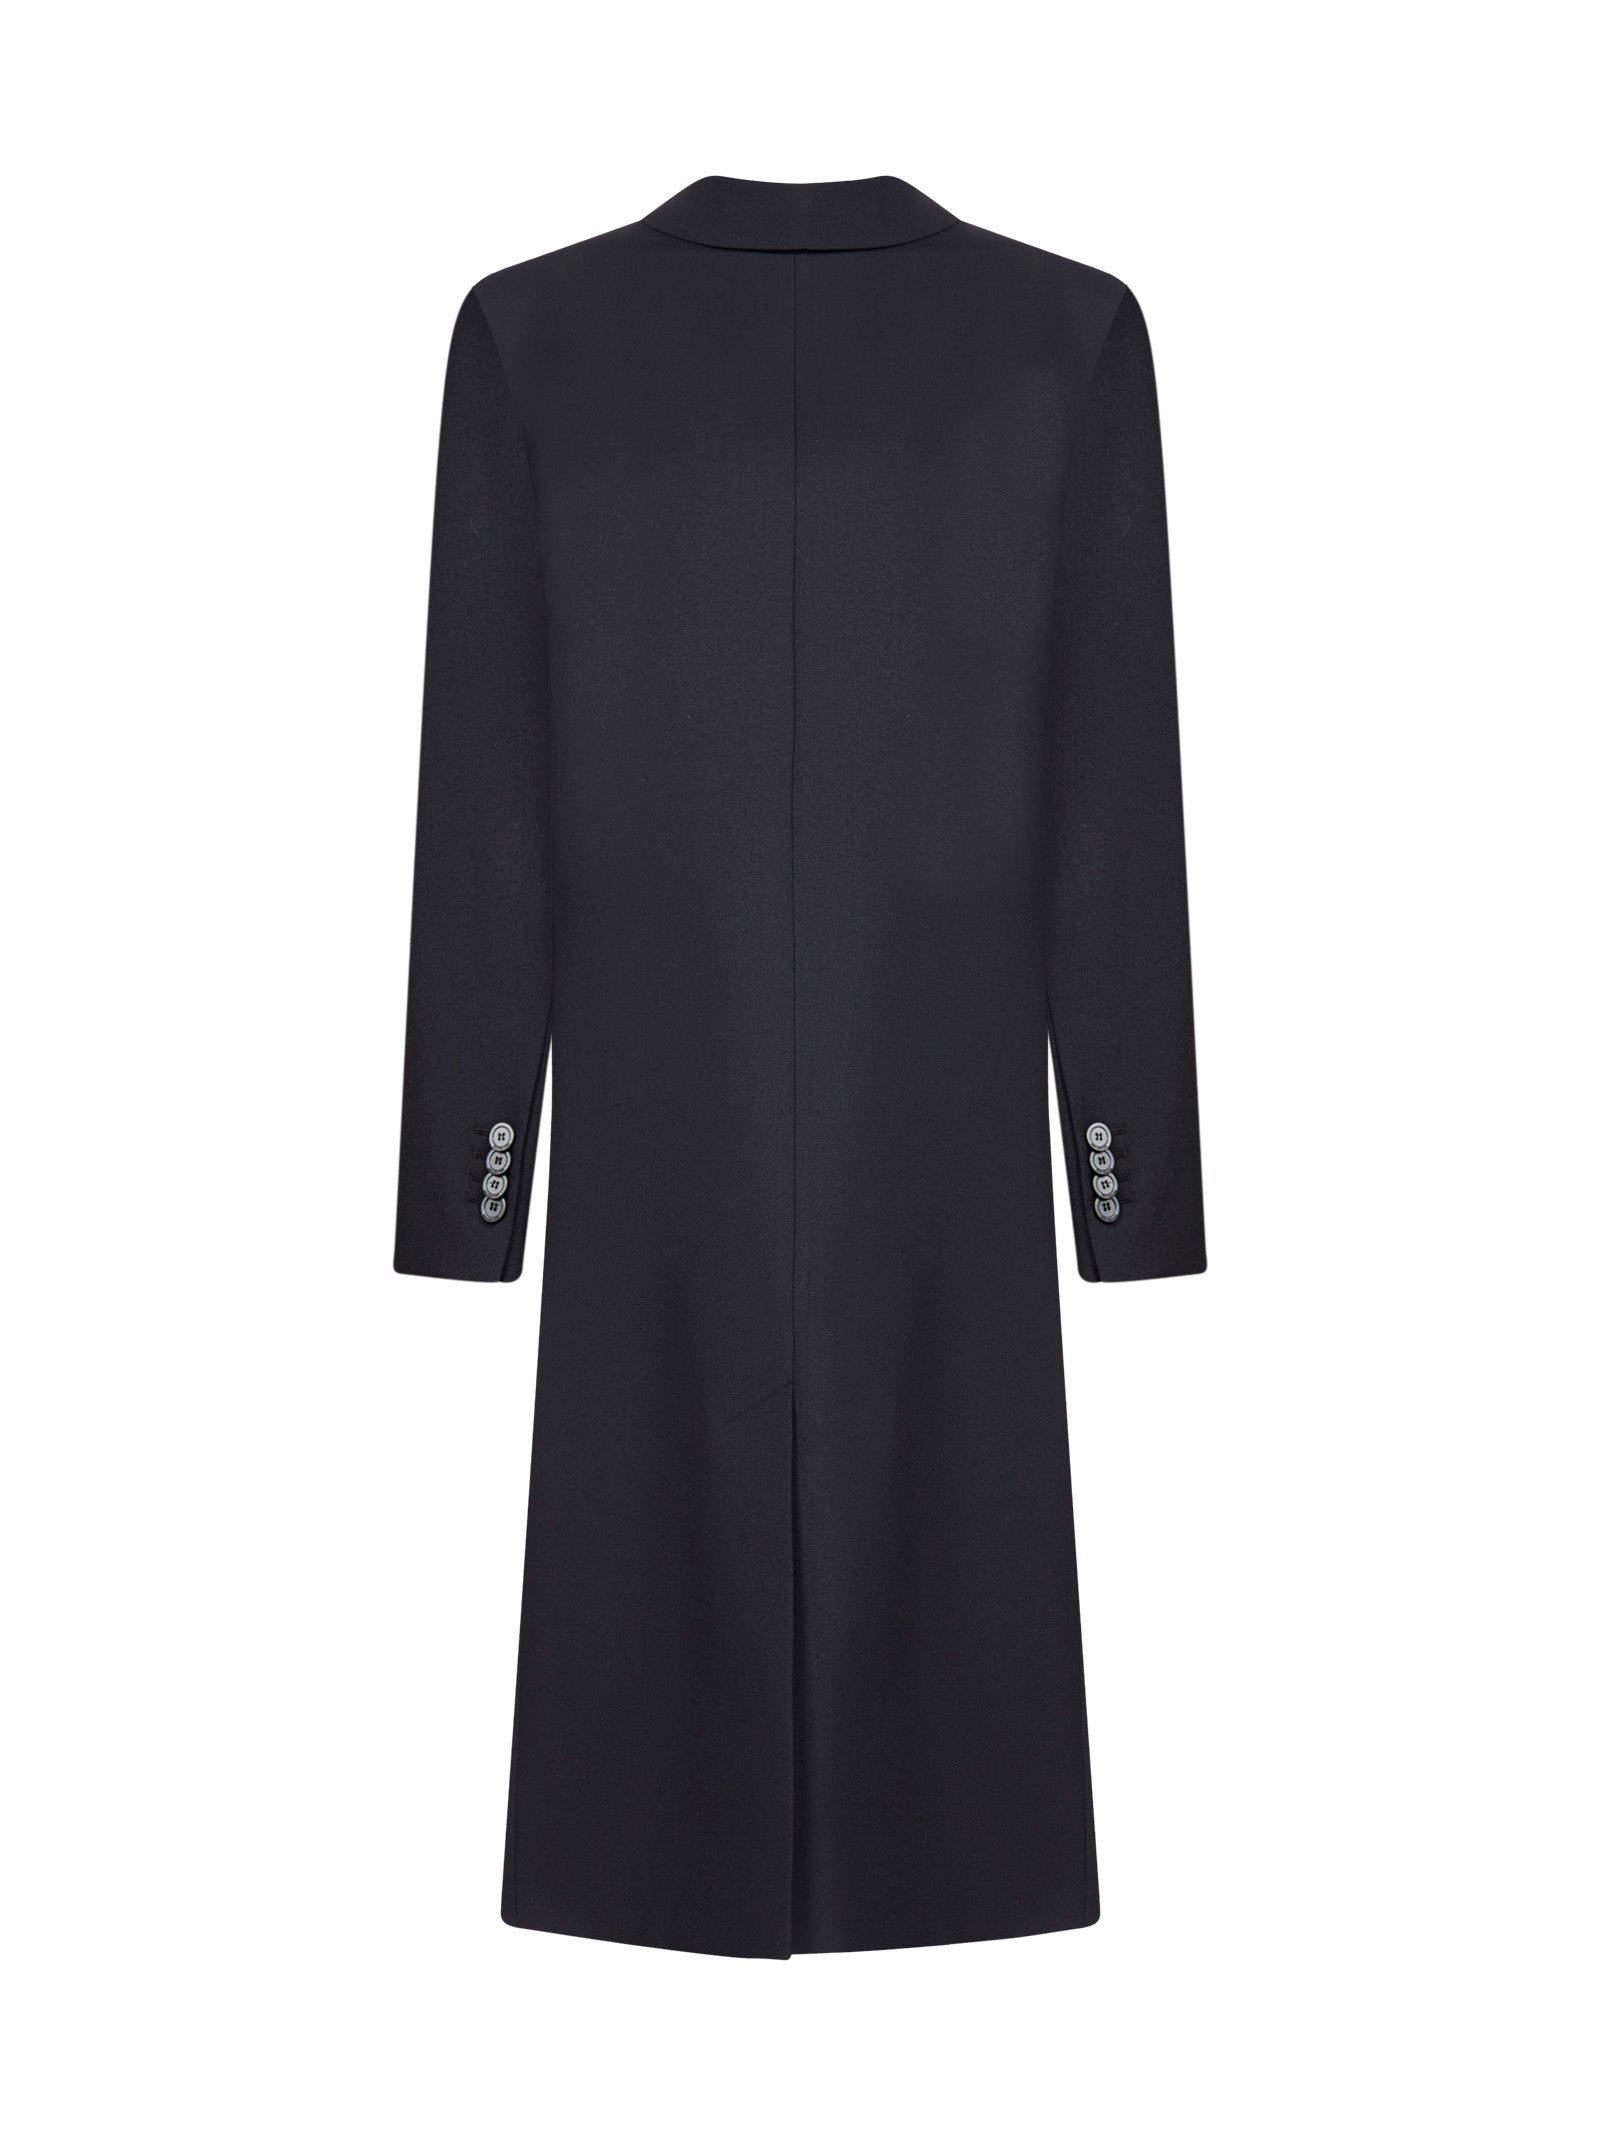 Balenciaga BALENCIAGA BACK TO FRONT COAT DRESS